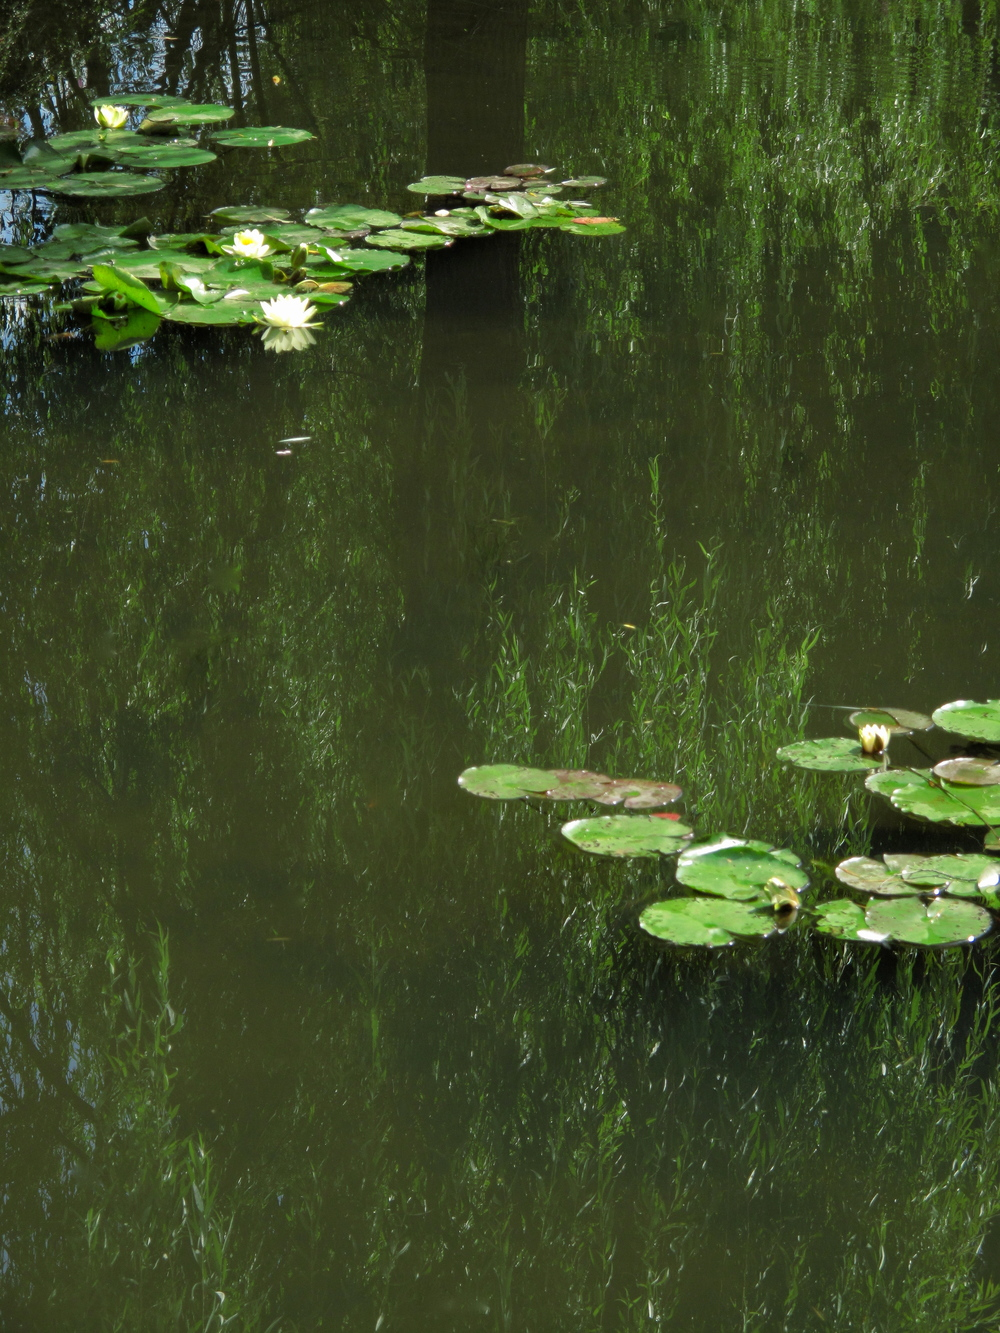 Nympheas - waterlilies and reflections of willow leaves at Giverny.